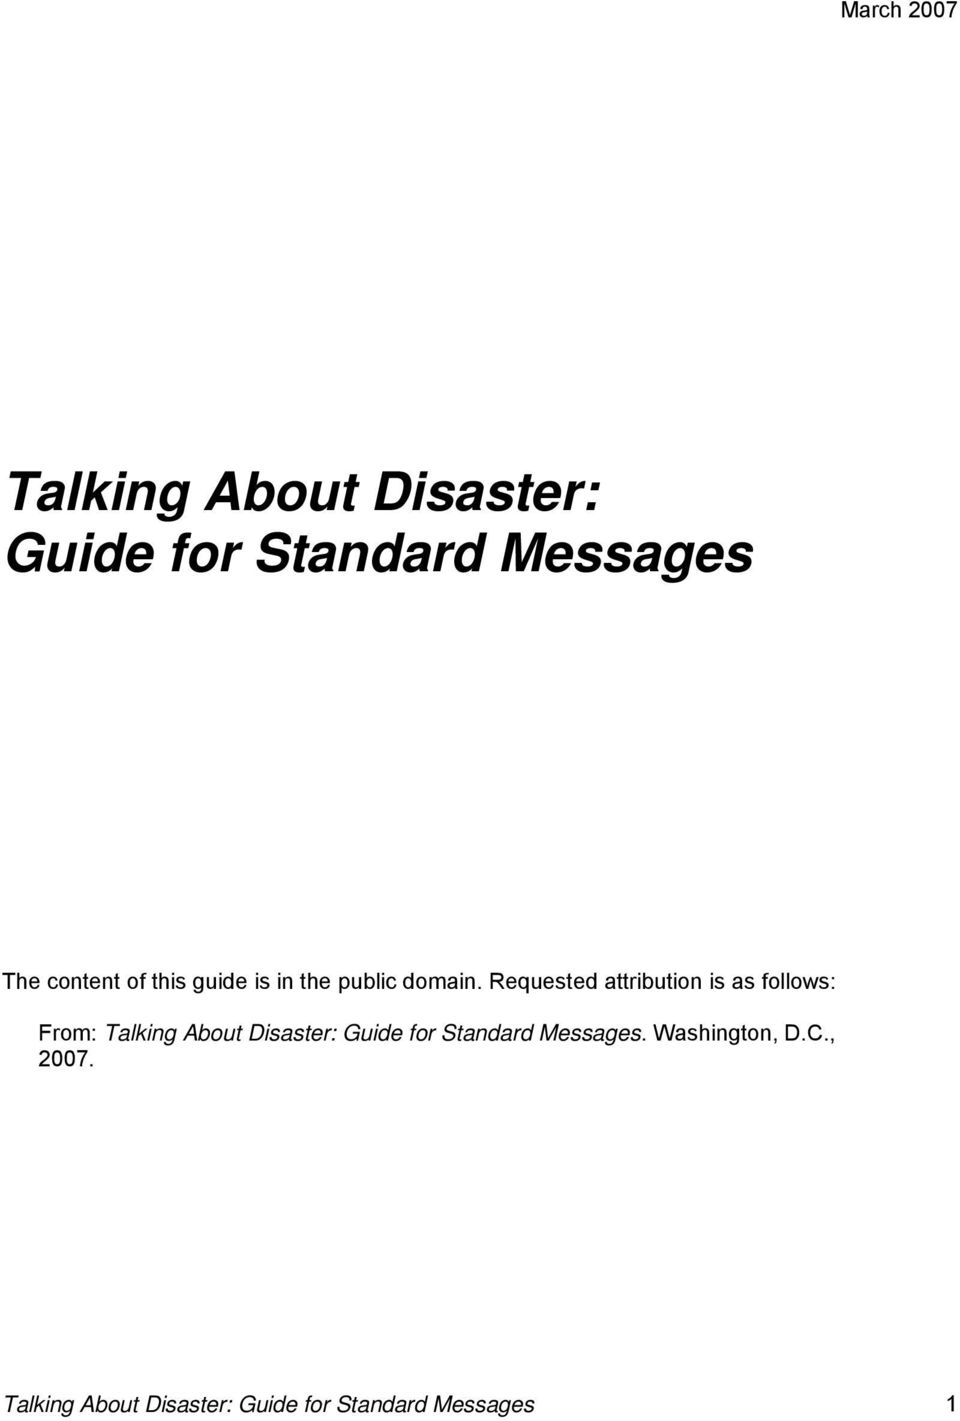 Requested attribution is as follows: From: Talking About Disaster: